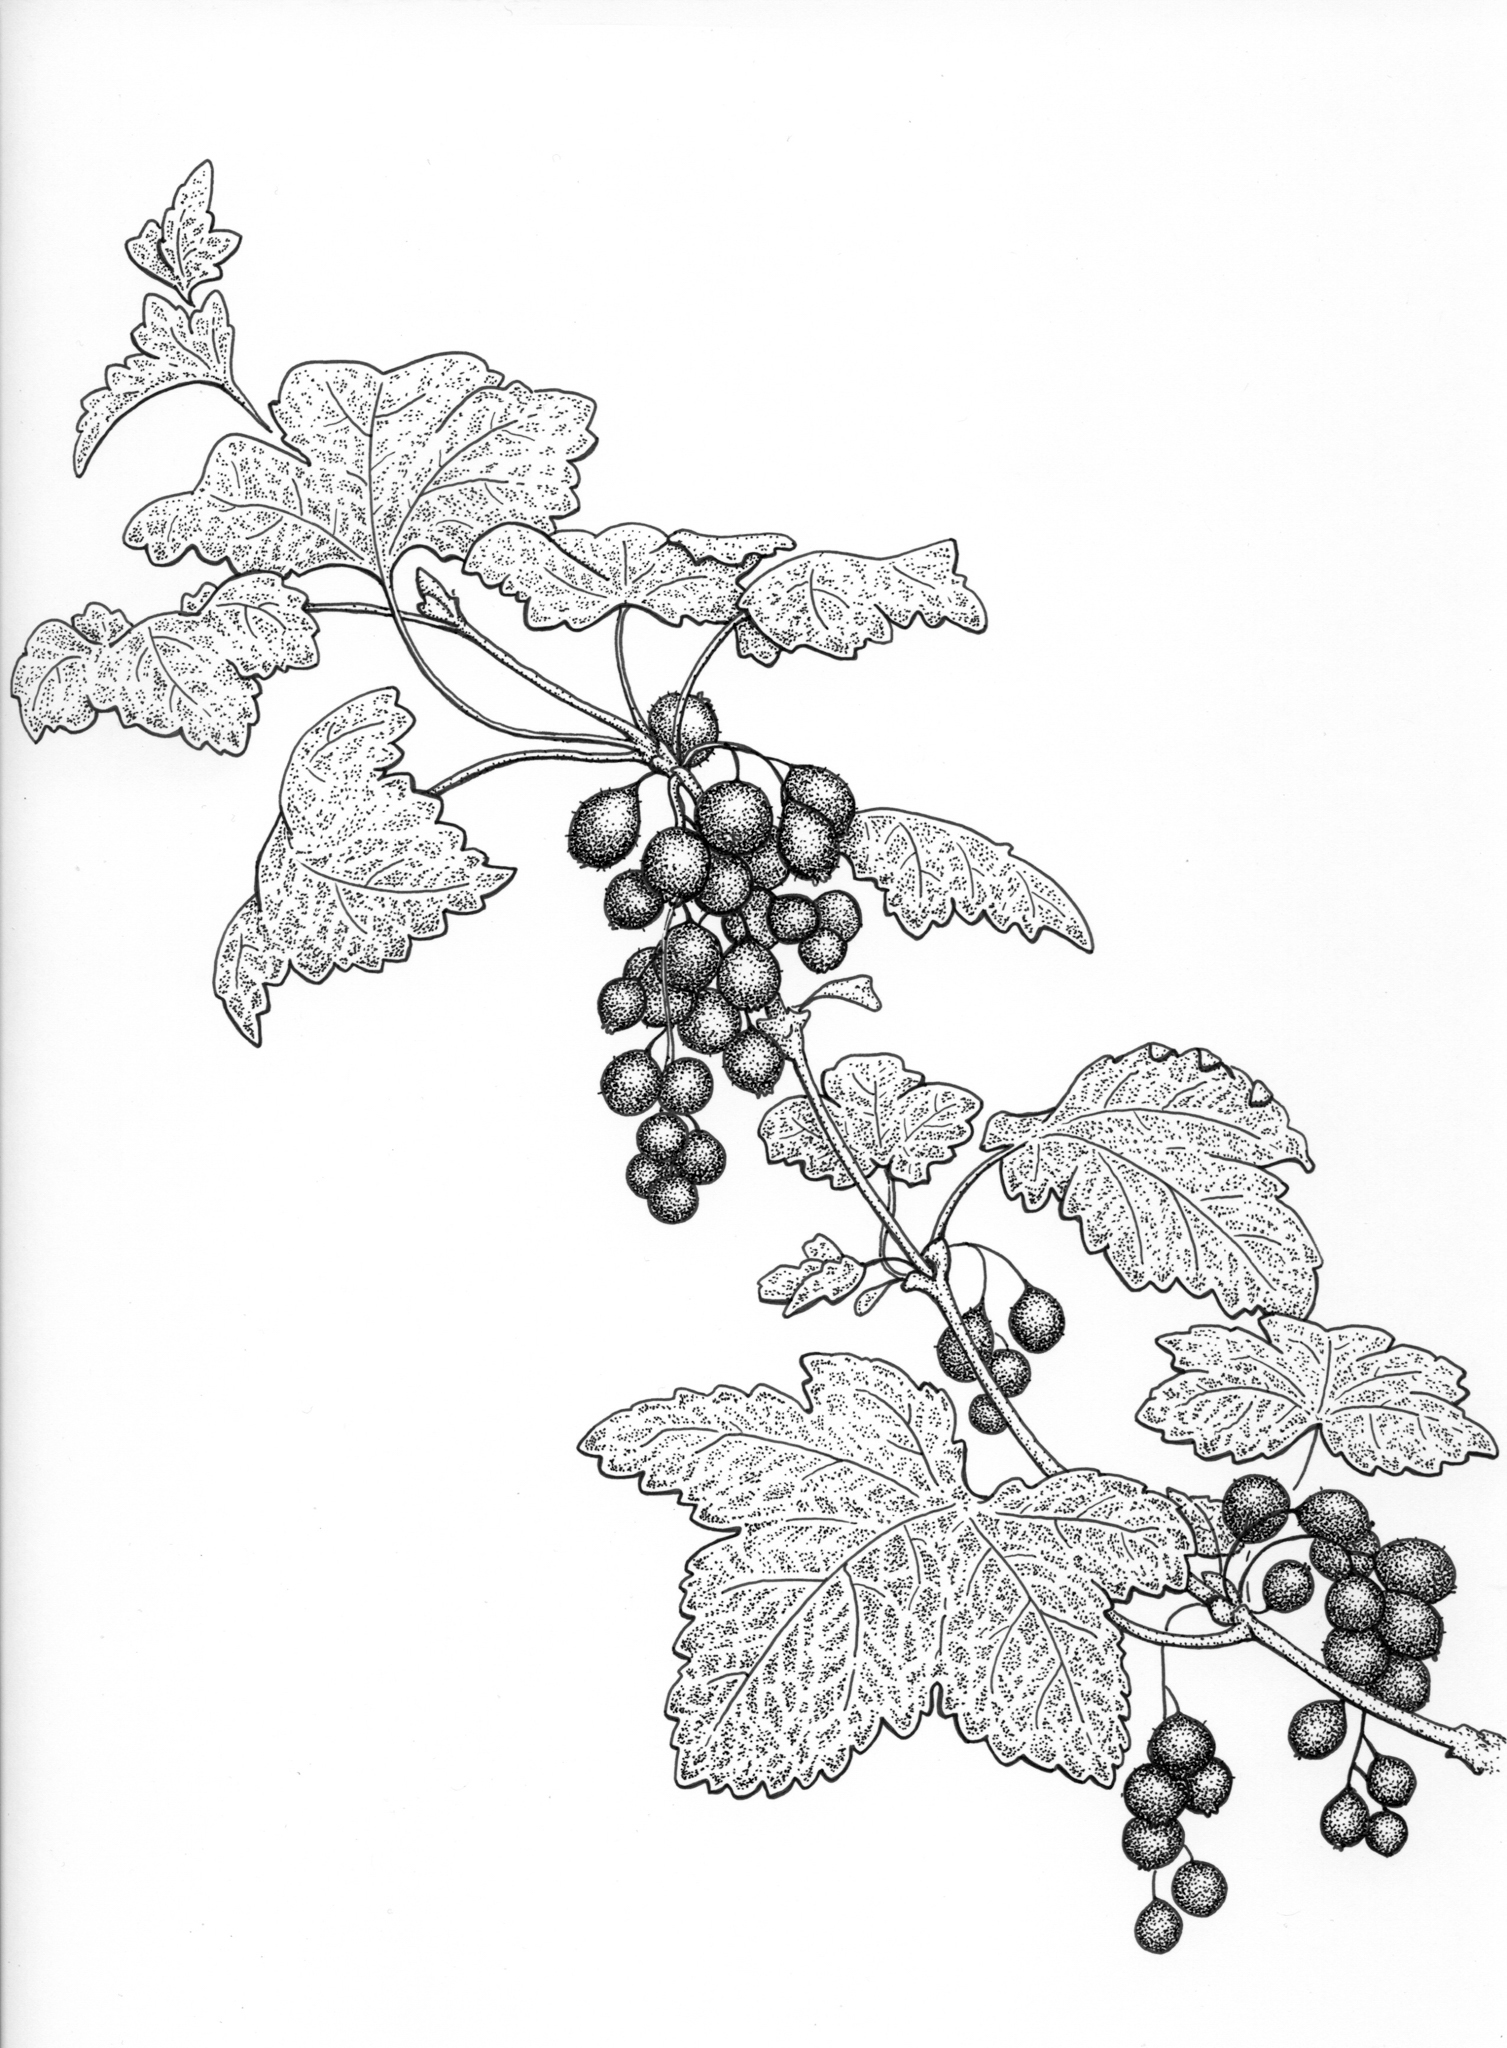 Trailing black currant drawing, currant berries, skunk currant, botanical illustration, edible berries drawing